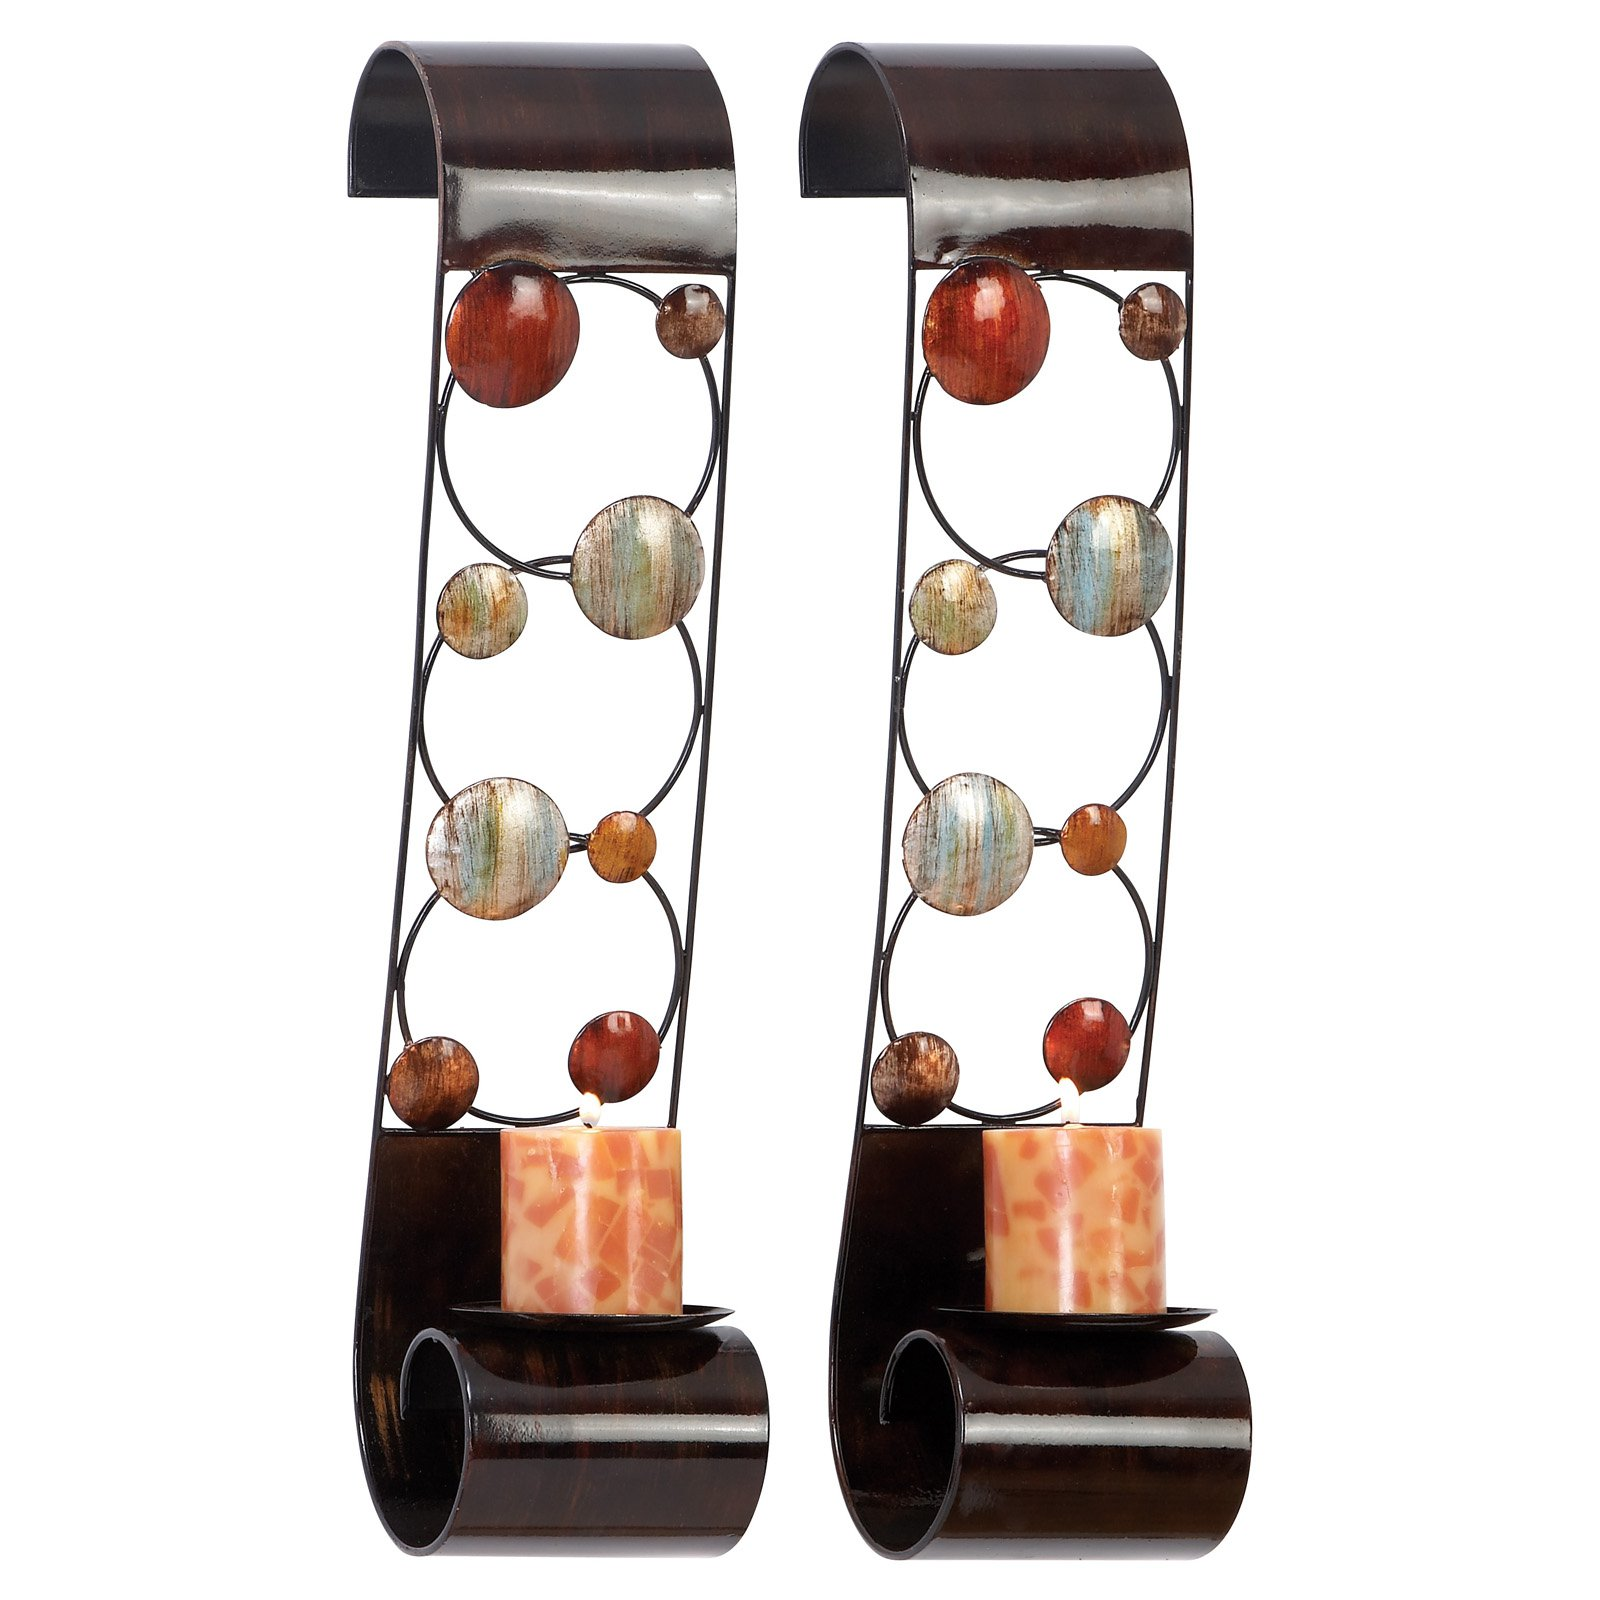 Decmode Metal Candle Sconce, Set of 2, Multi Color by DecMode